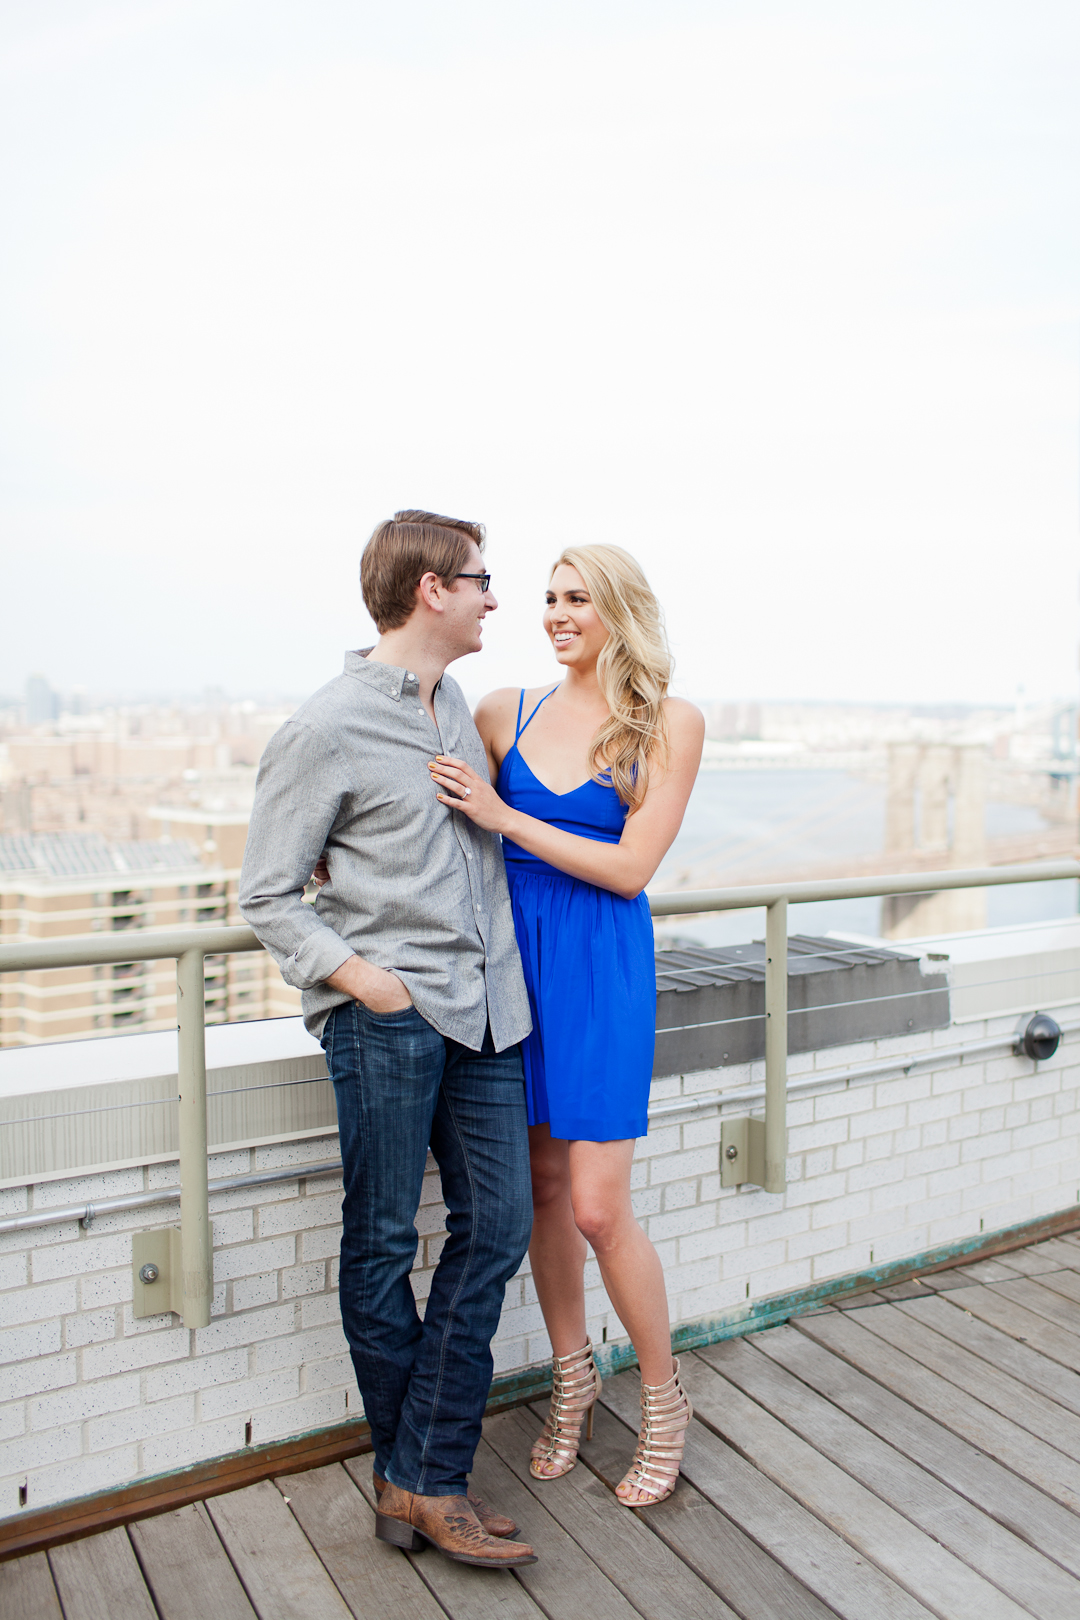 Melissa Kruse Photography - Kelley & Billy Engagement Photos-4.jpg